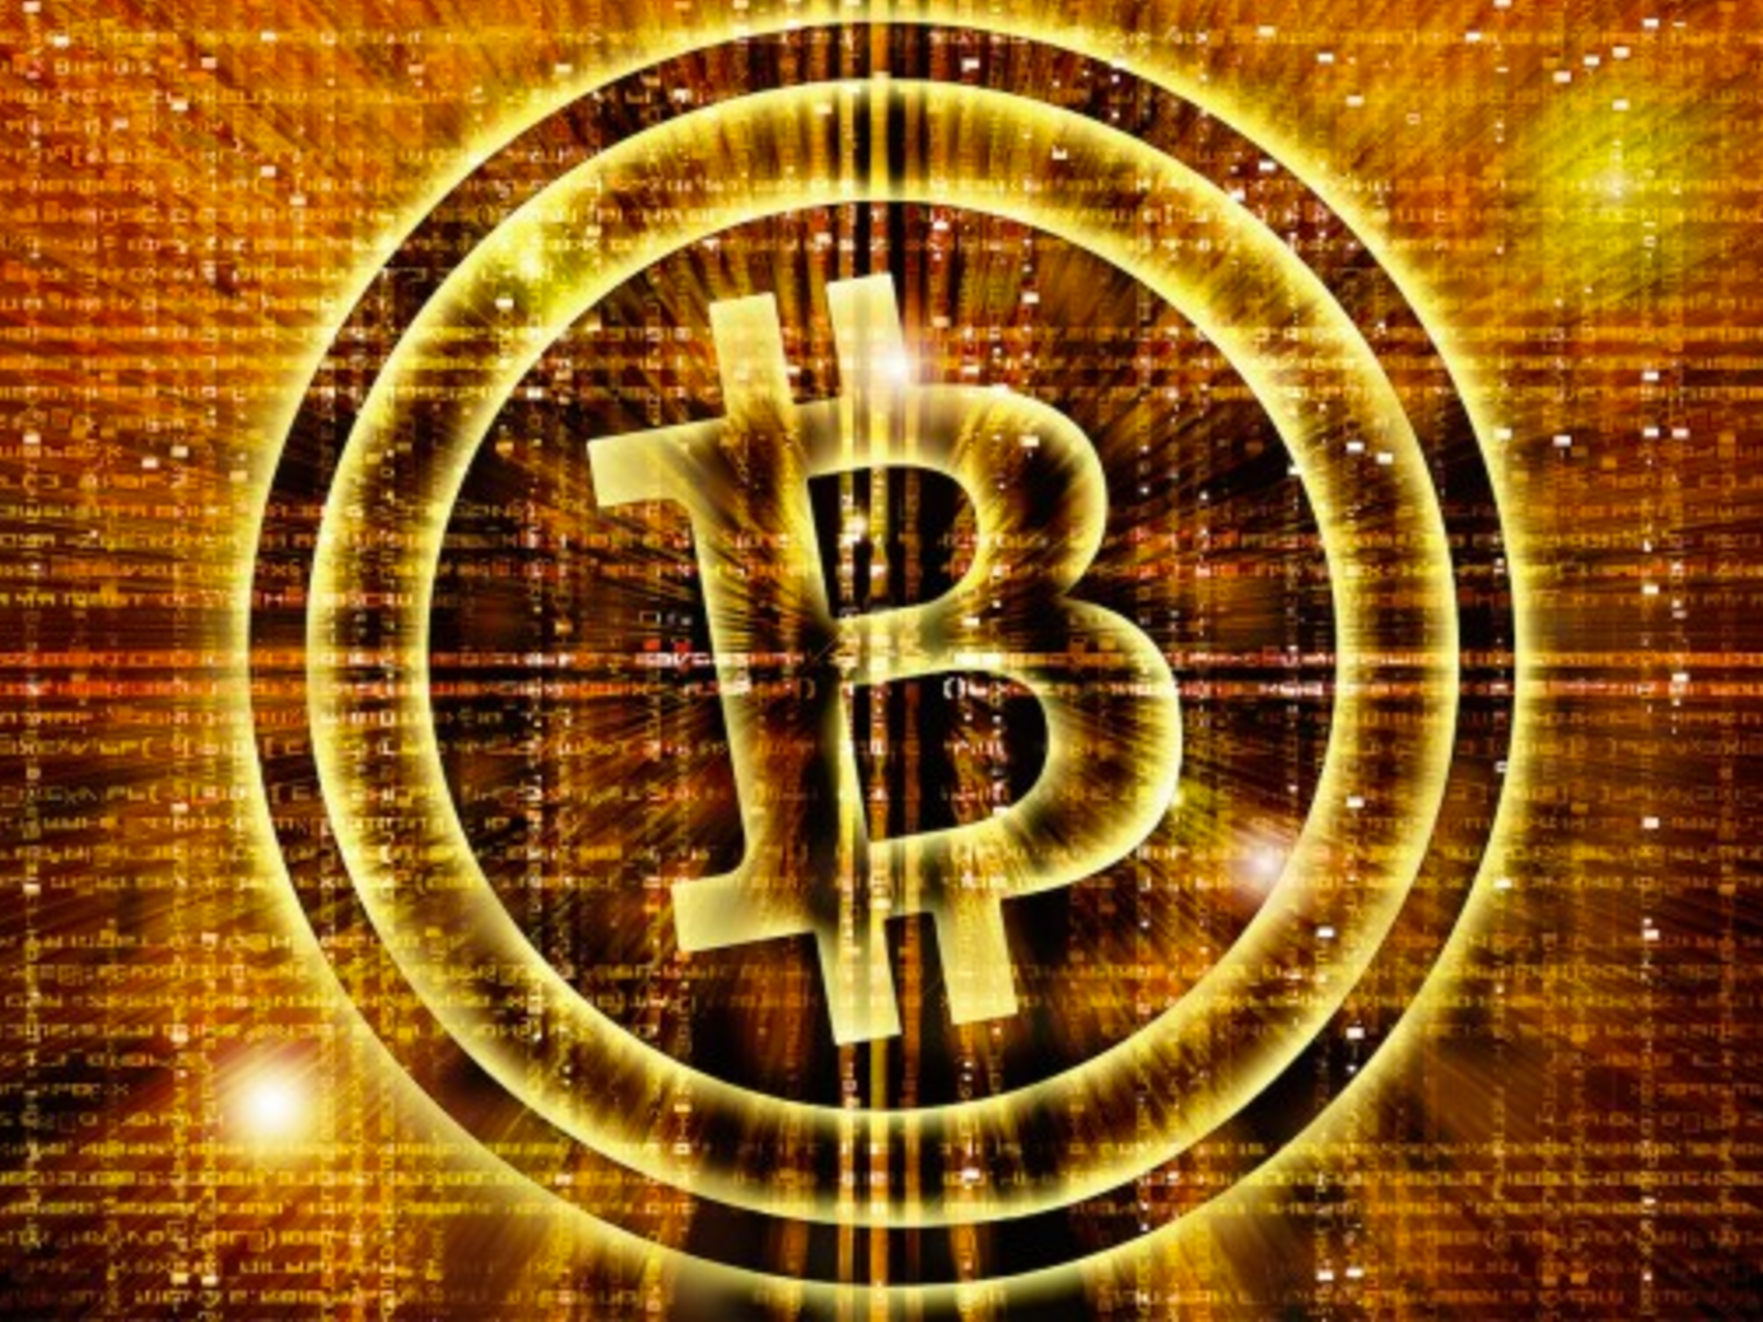 Bitcoin Price Has Dropped Since Craig Wright's Claim to Be Currency Founder